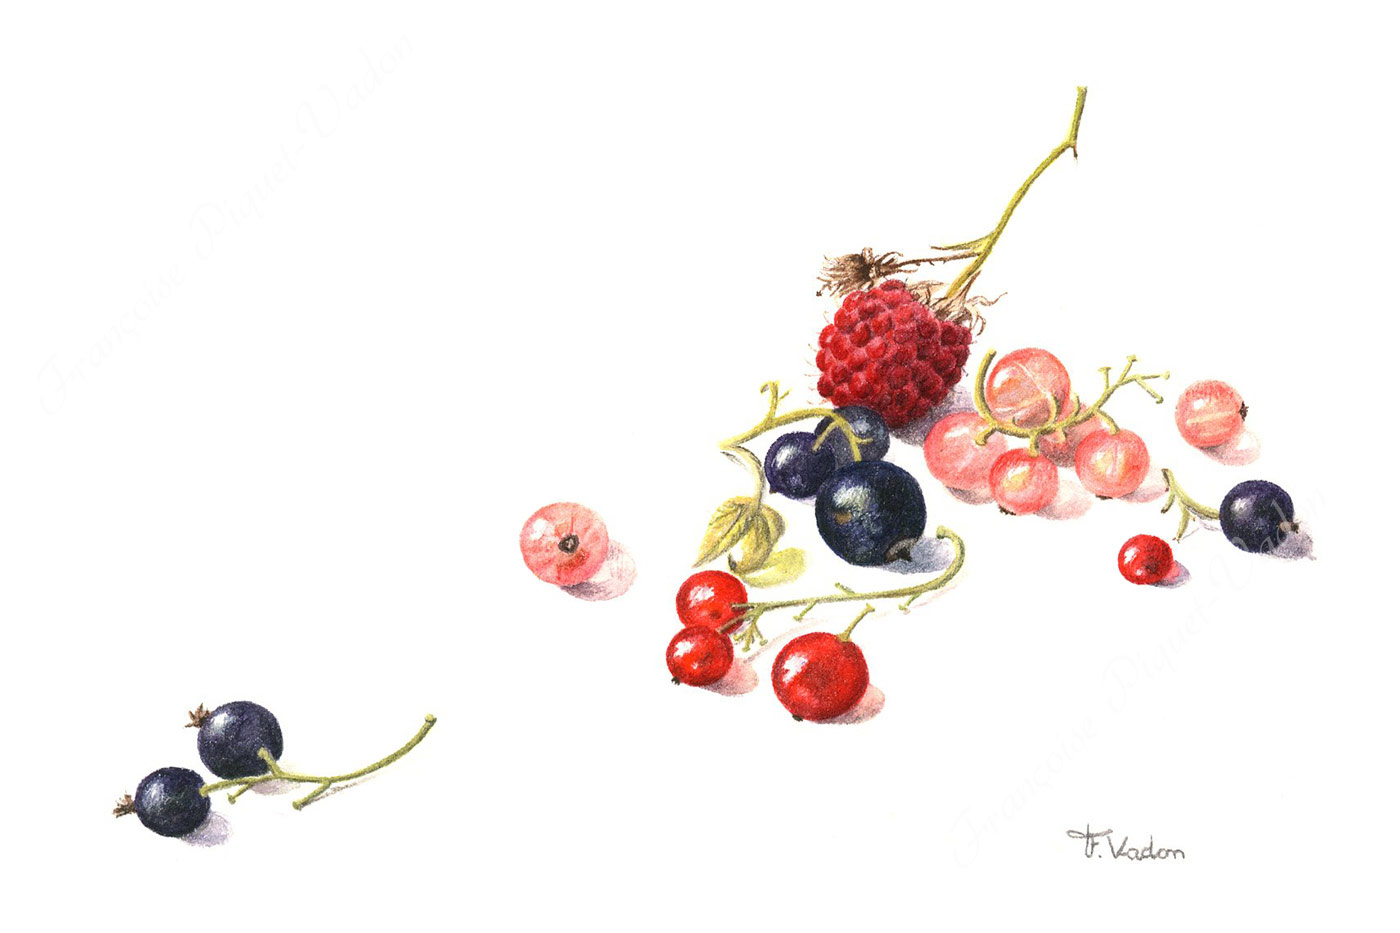 Composition fruits rouges aquarelle botanique